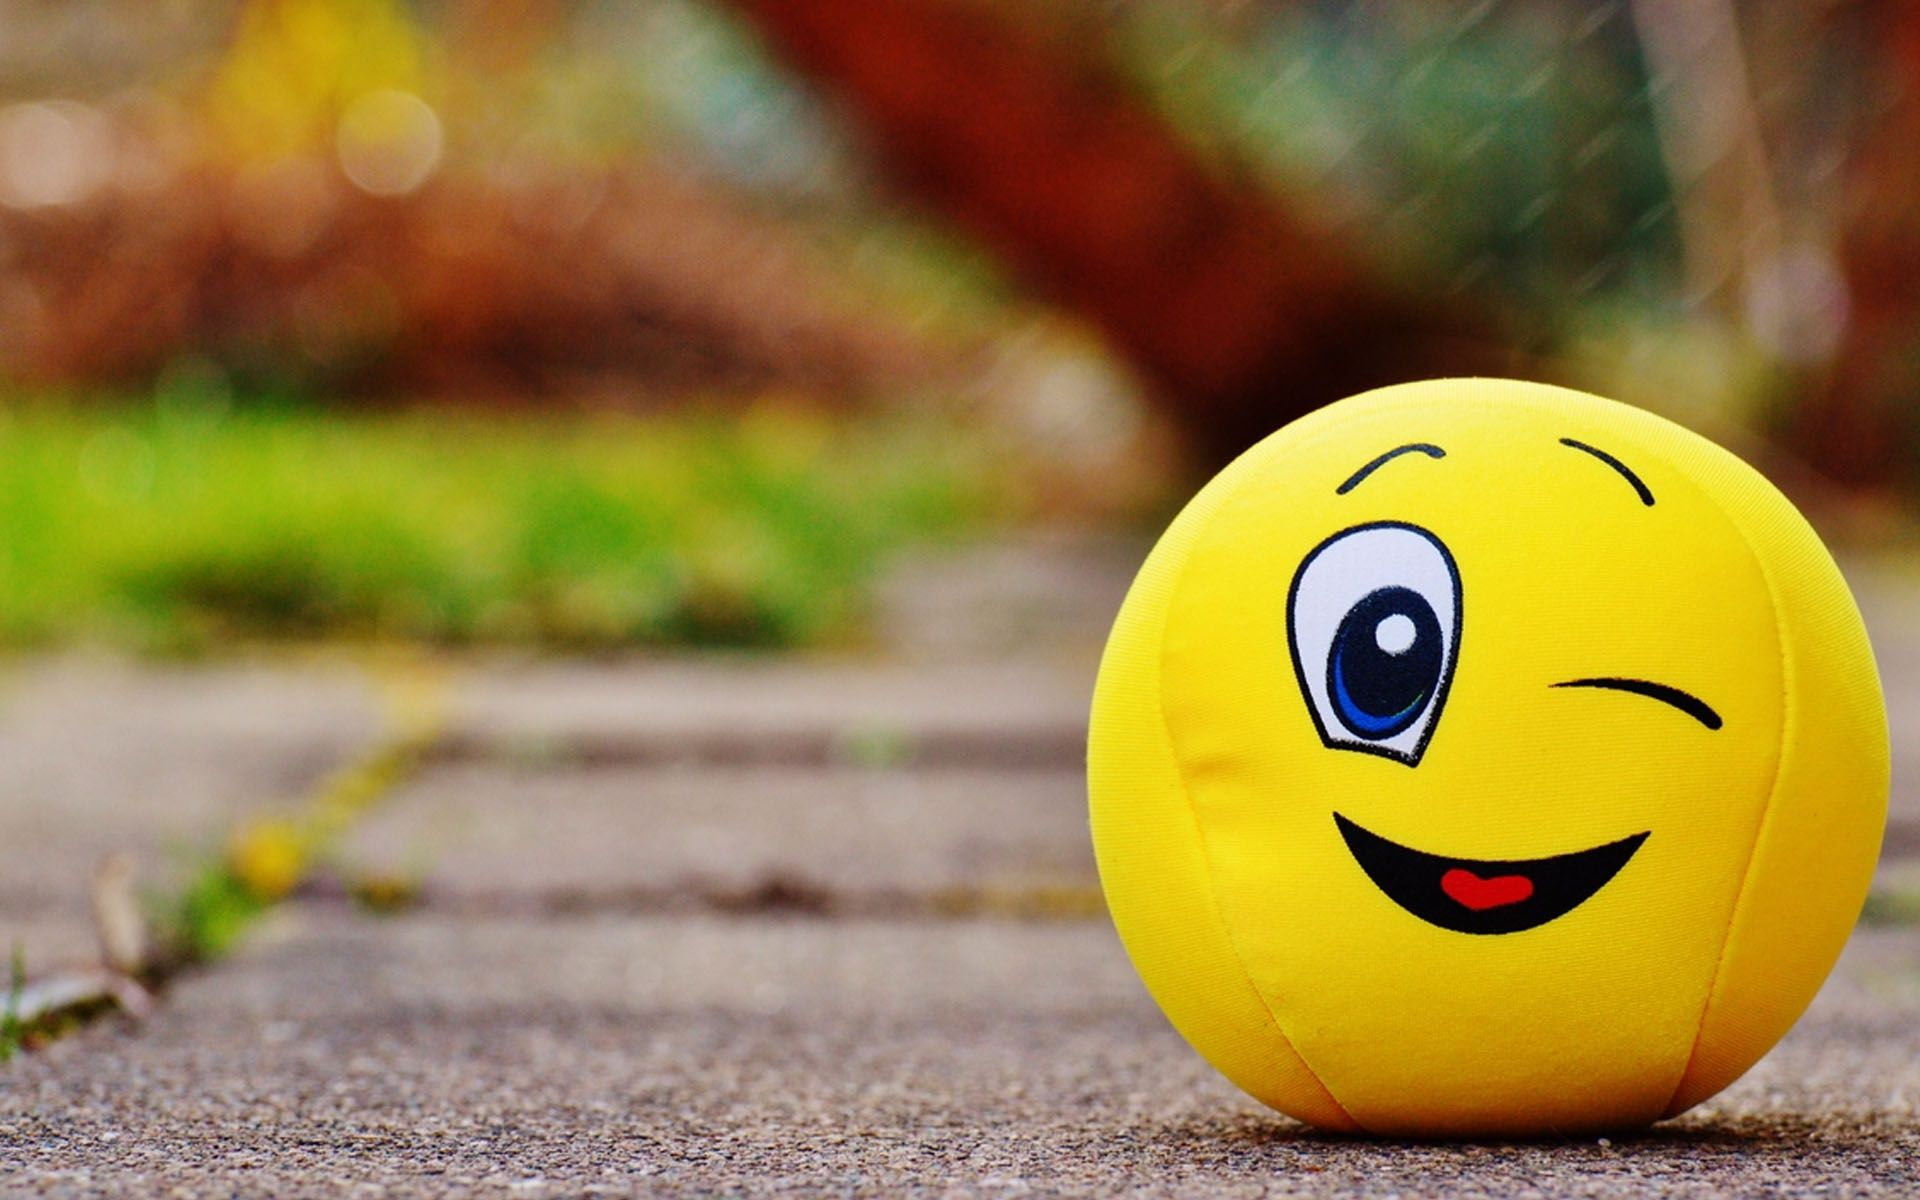 Smiley face HD wallpaper Hd cute wallpapers, Smile